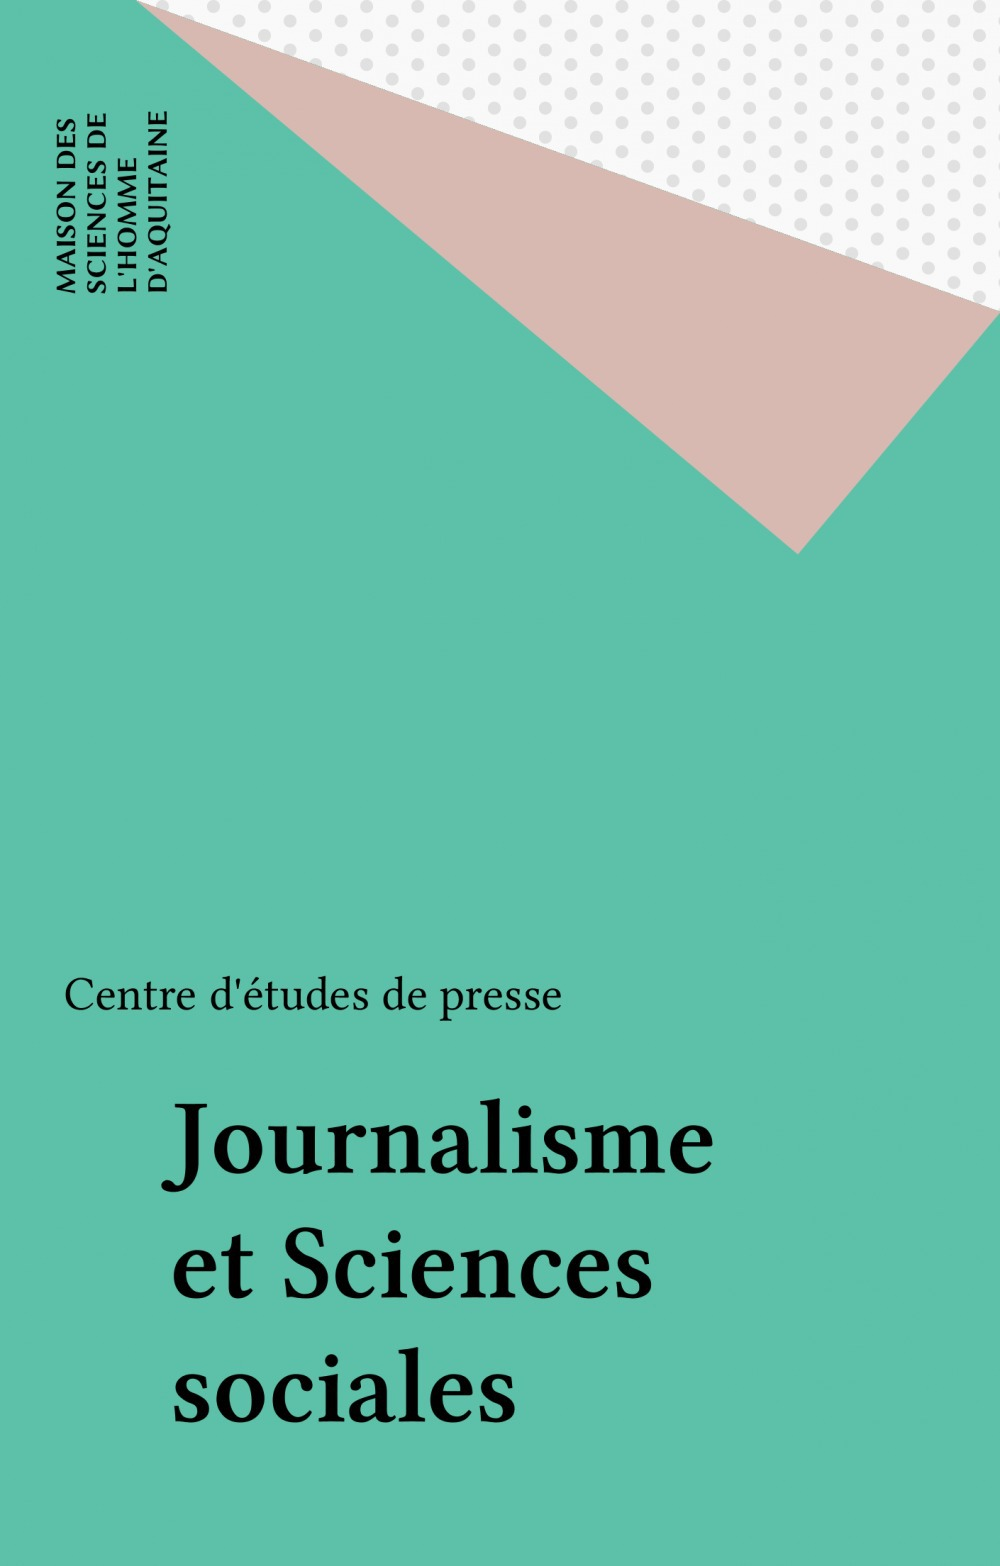 Journalisme et Sciences sociales